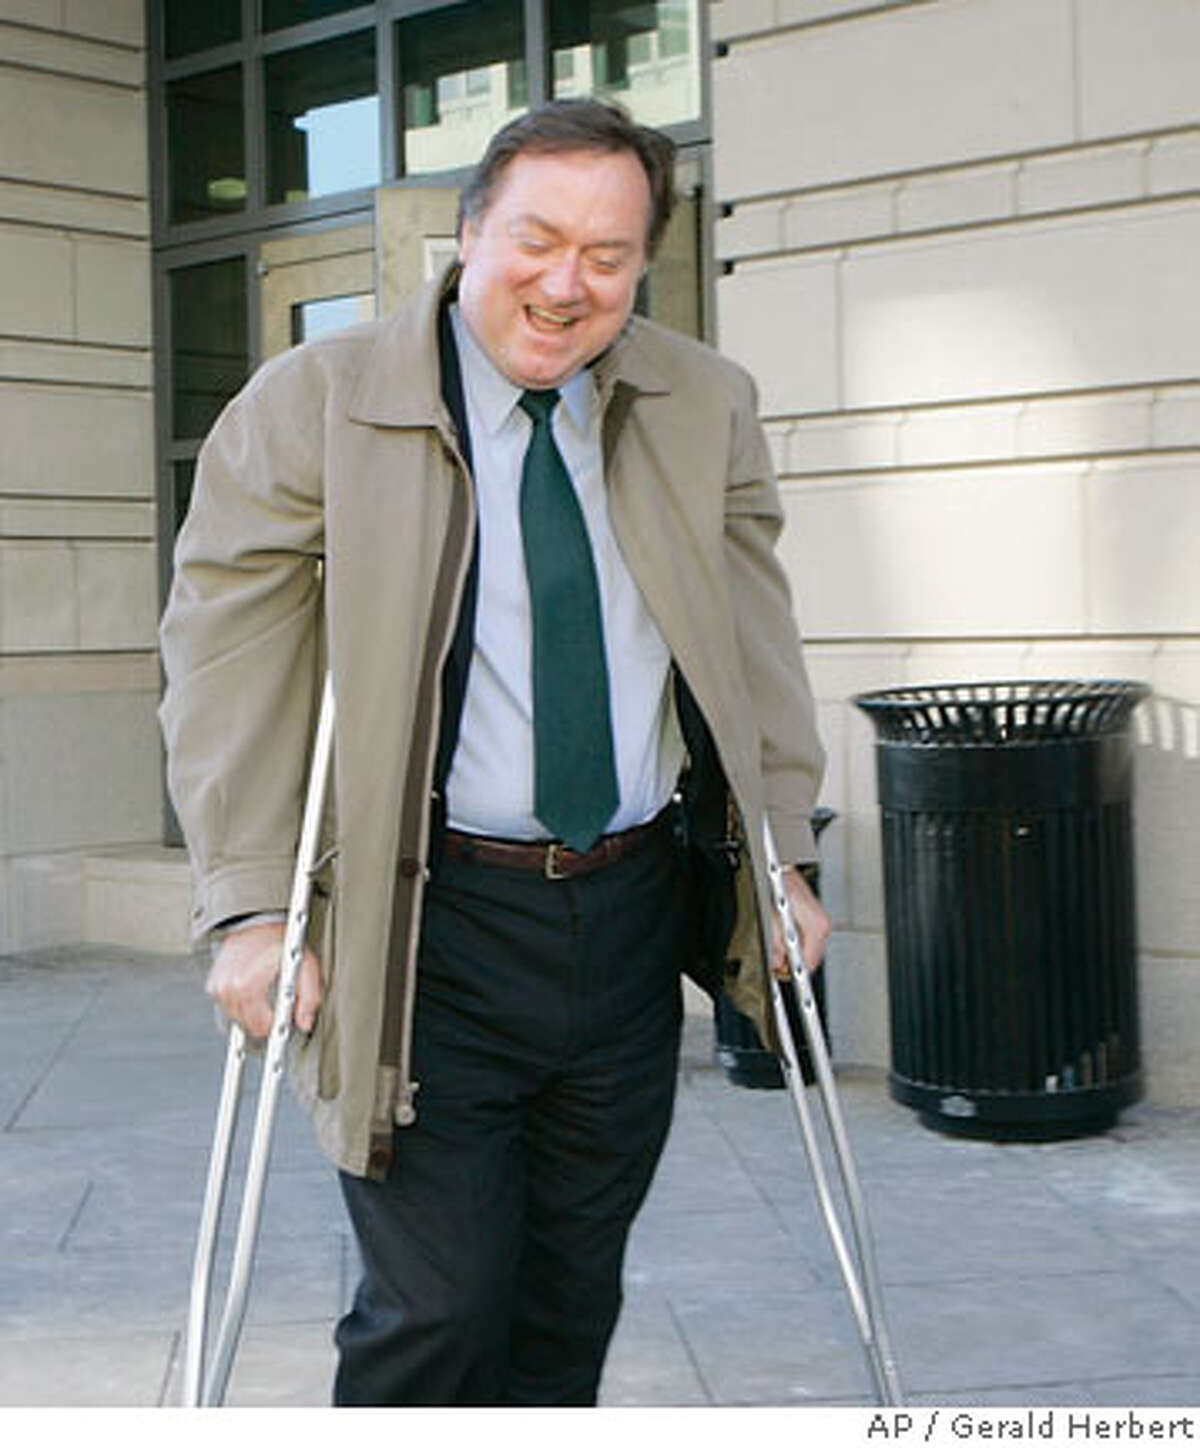 Tim Russert, Washington bureau chief of NBC News, leaves U.S. Federal Court in Washington, Thursday, Feb. 8, 2007, after testifying in the perjury trial of I. Lewis 'Scooter' Libby. (AP Photo/Gerald Herbert)